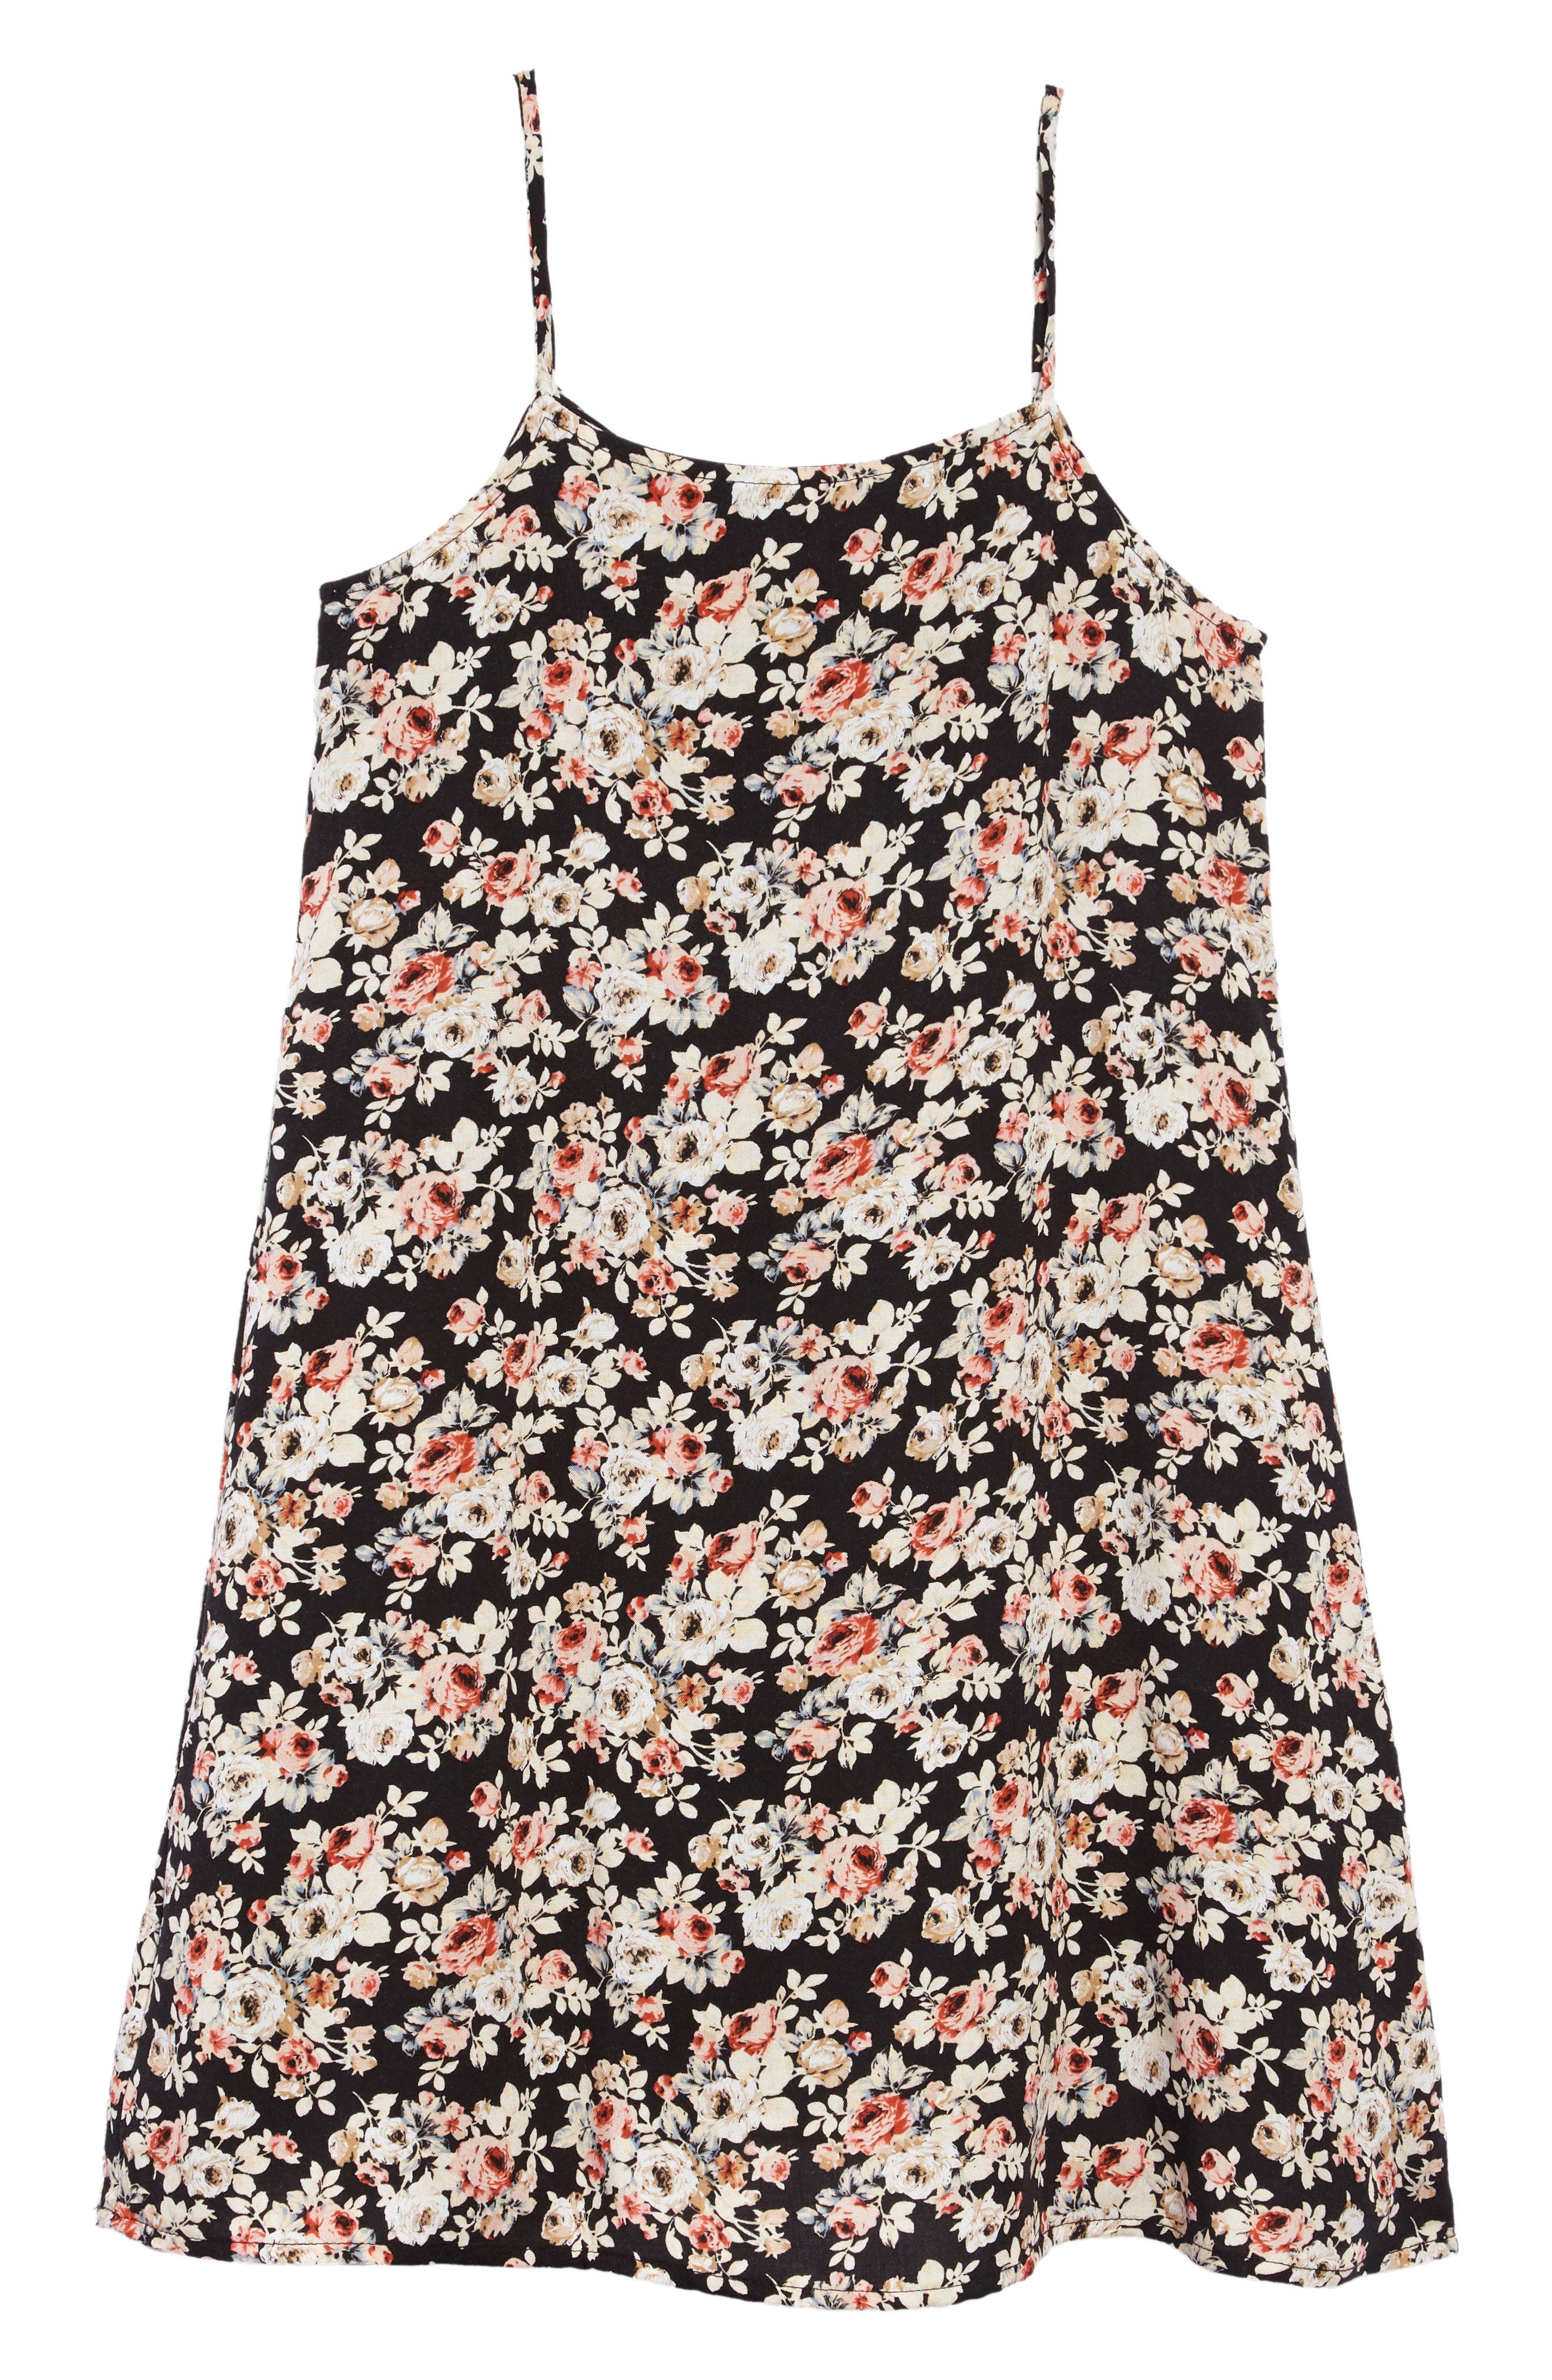 Floral Shift Dress,                             Alternate thumbnail 2, color,                             Black Floral